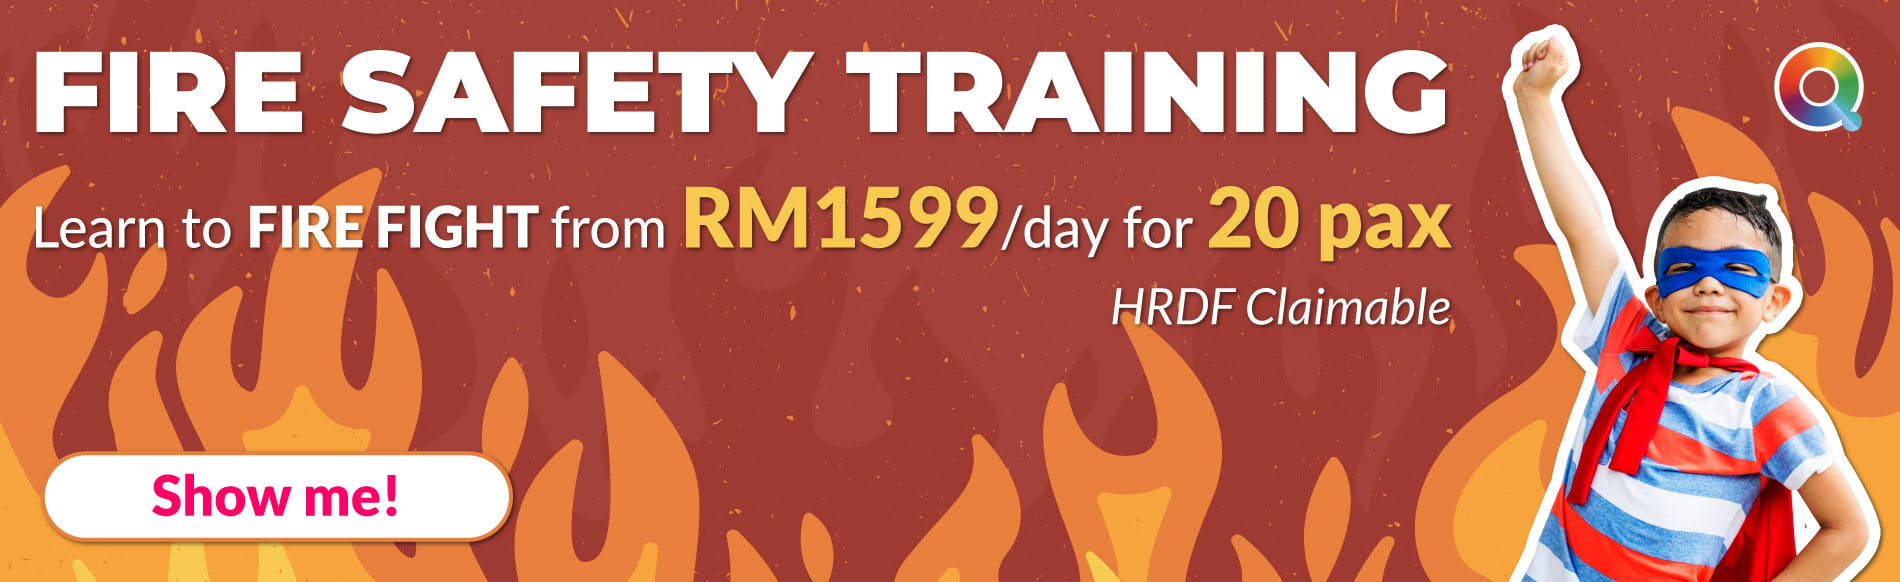 Fire Safety Training 04